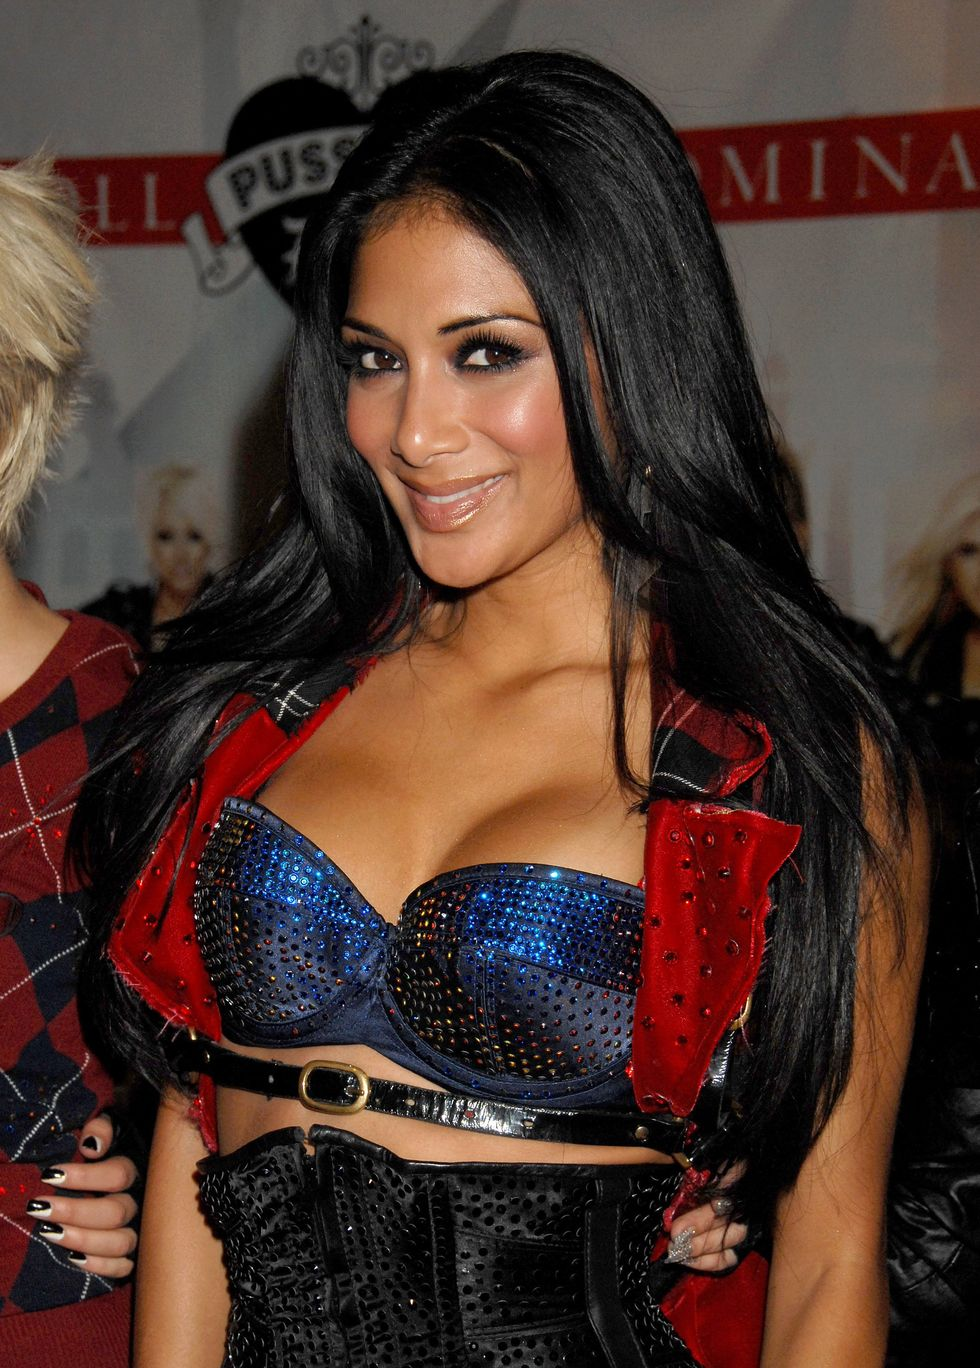 the-pussycat-dolls-performs-at-virgin-megastore-in-hollywood-15